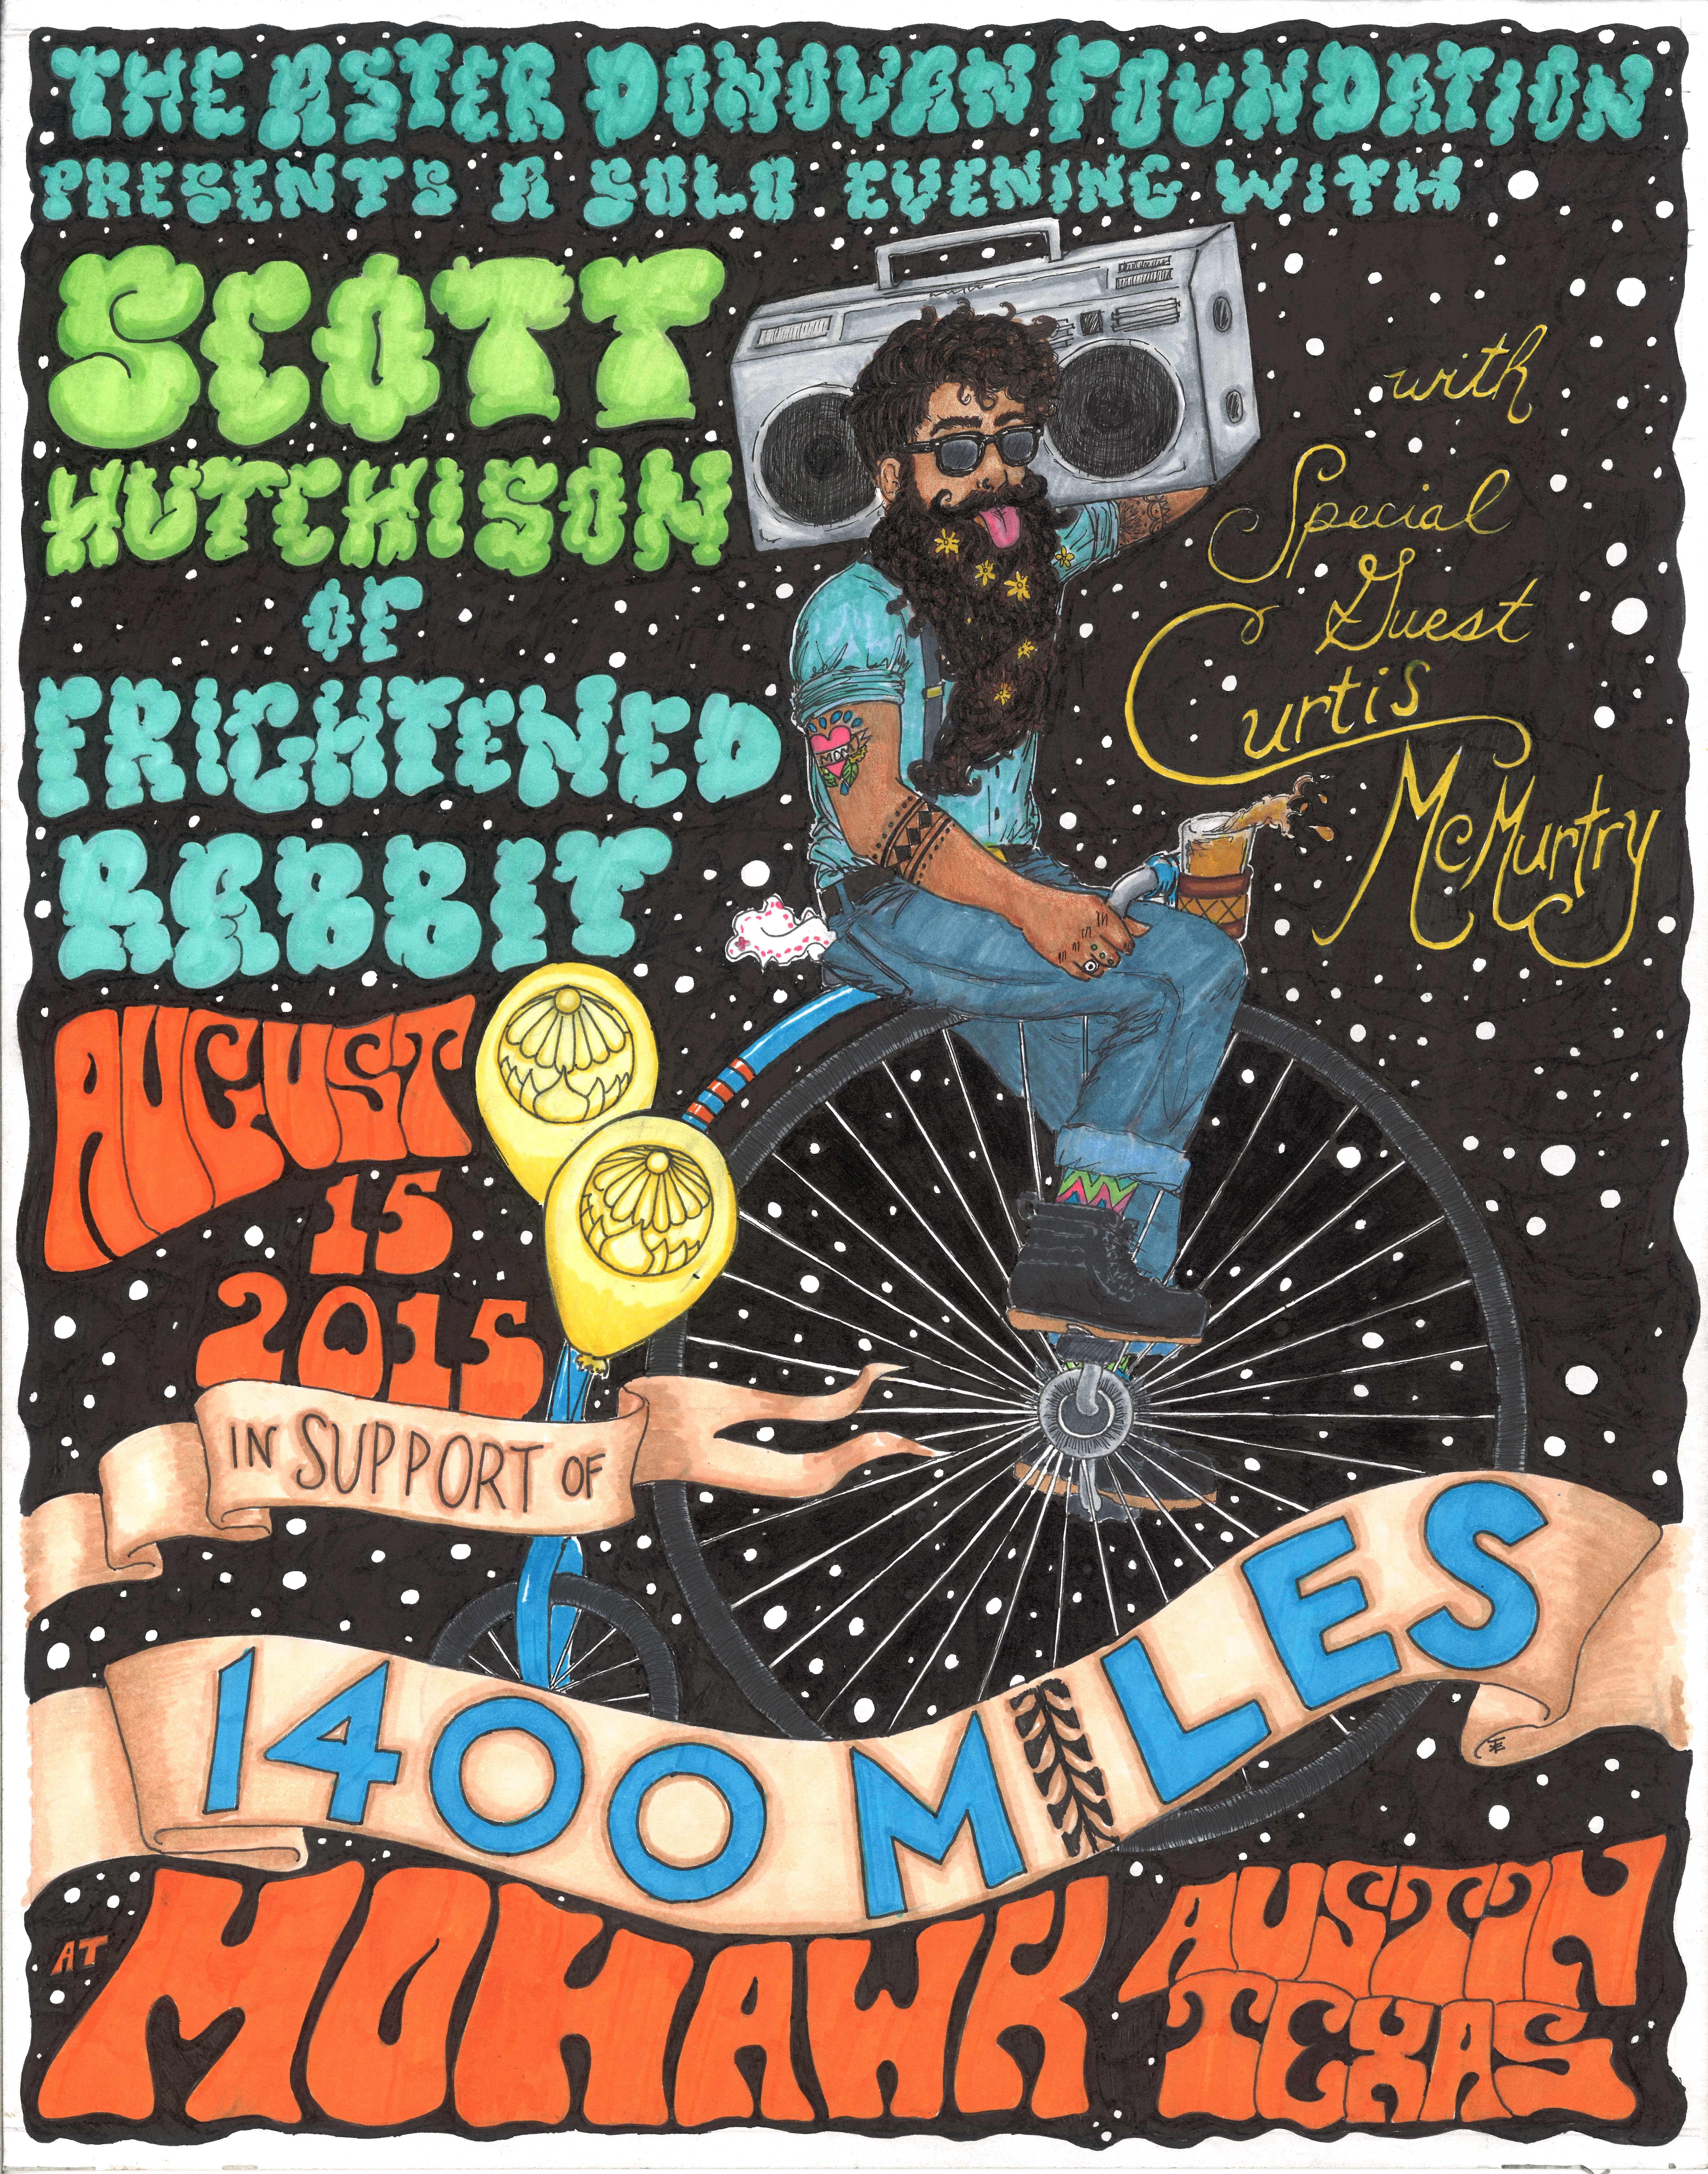 2015 ADF Benefit Poster - Featuring Scott Hutchison and Curtis McMurtry 00025